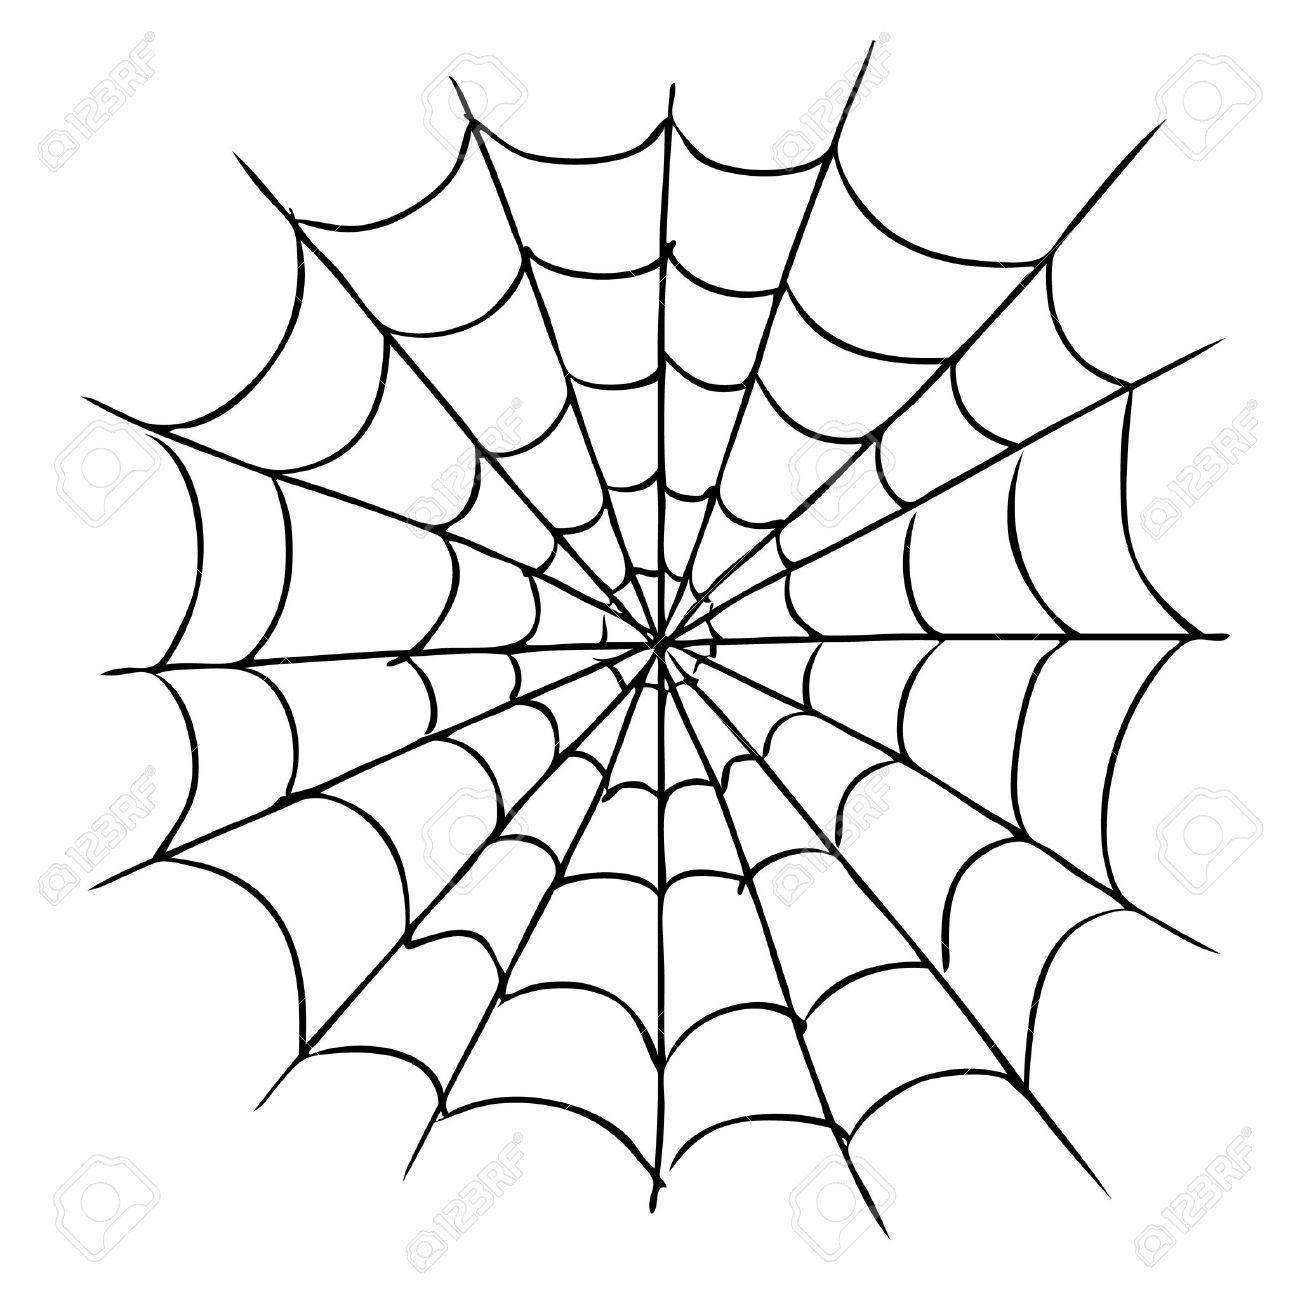 1300x1300 Drawing Of Spider Web How To Draw A Halloween Spider